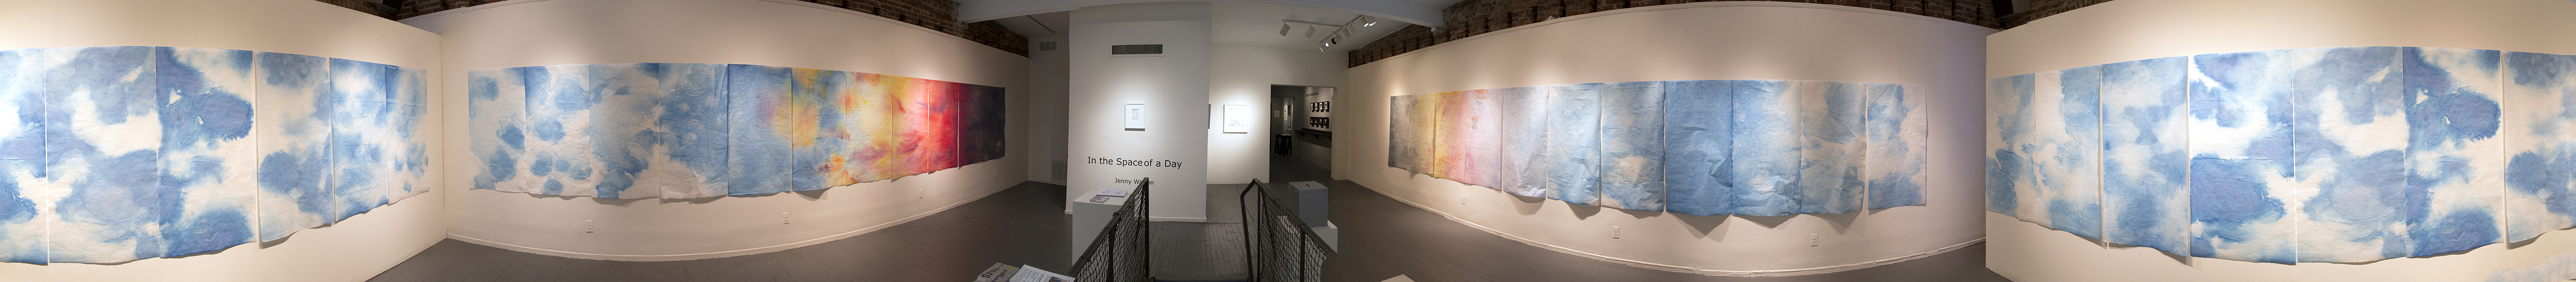 """In the Space of a Day"" a large 75 ft installation of watercolor that takes the viewer through movements in the day"